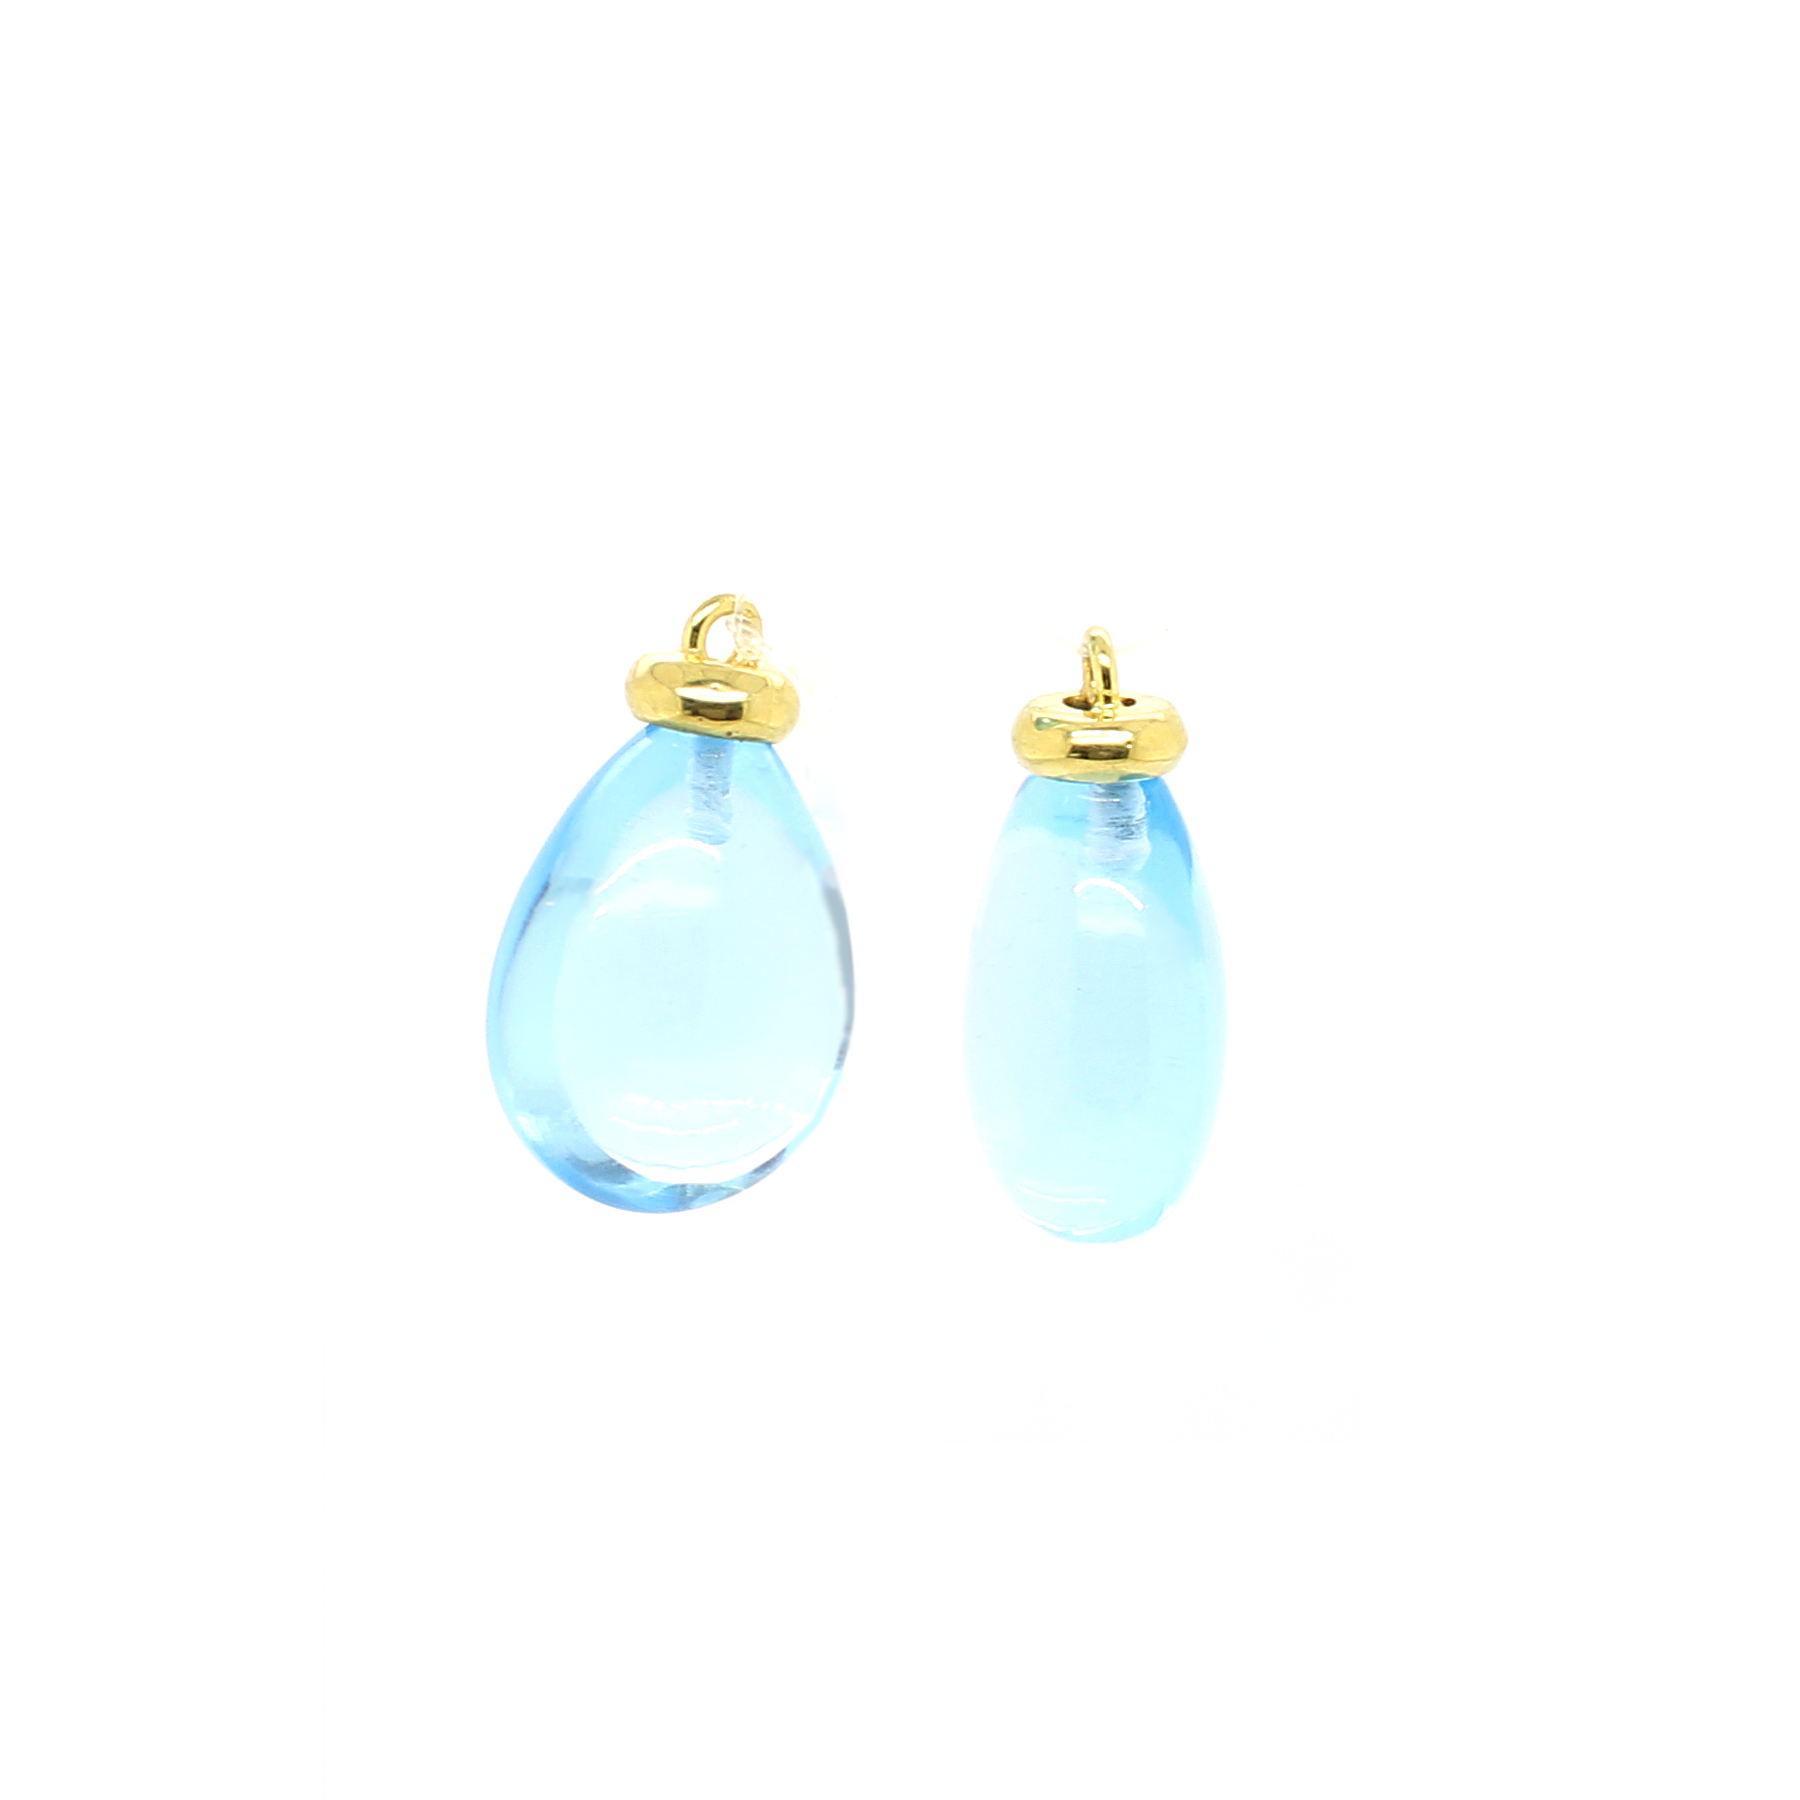 Mazza 14 Karat Yellow Gold Blue Topaz Tear Drops for Earrings